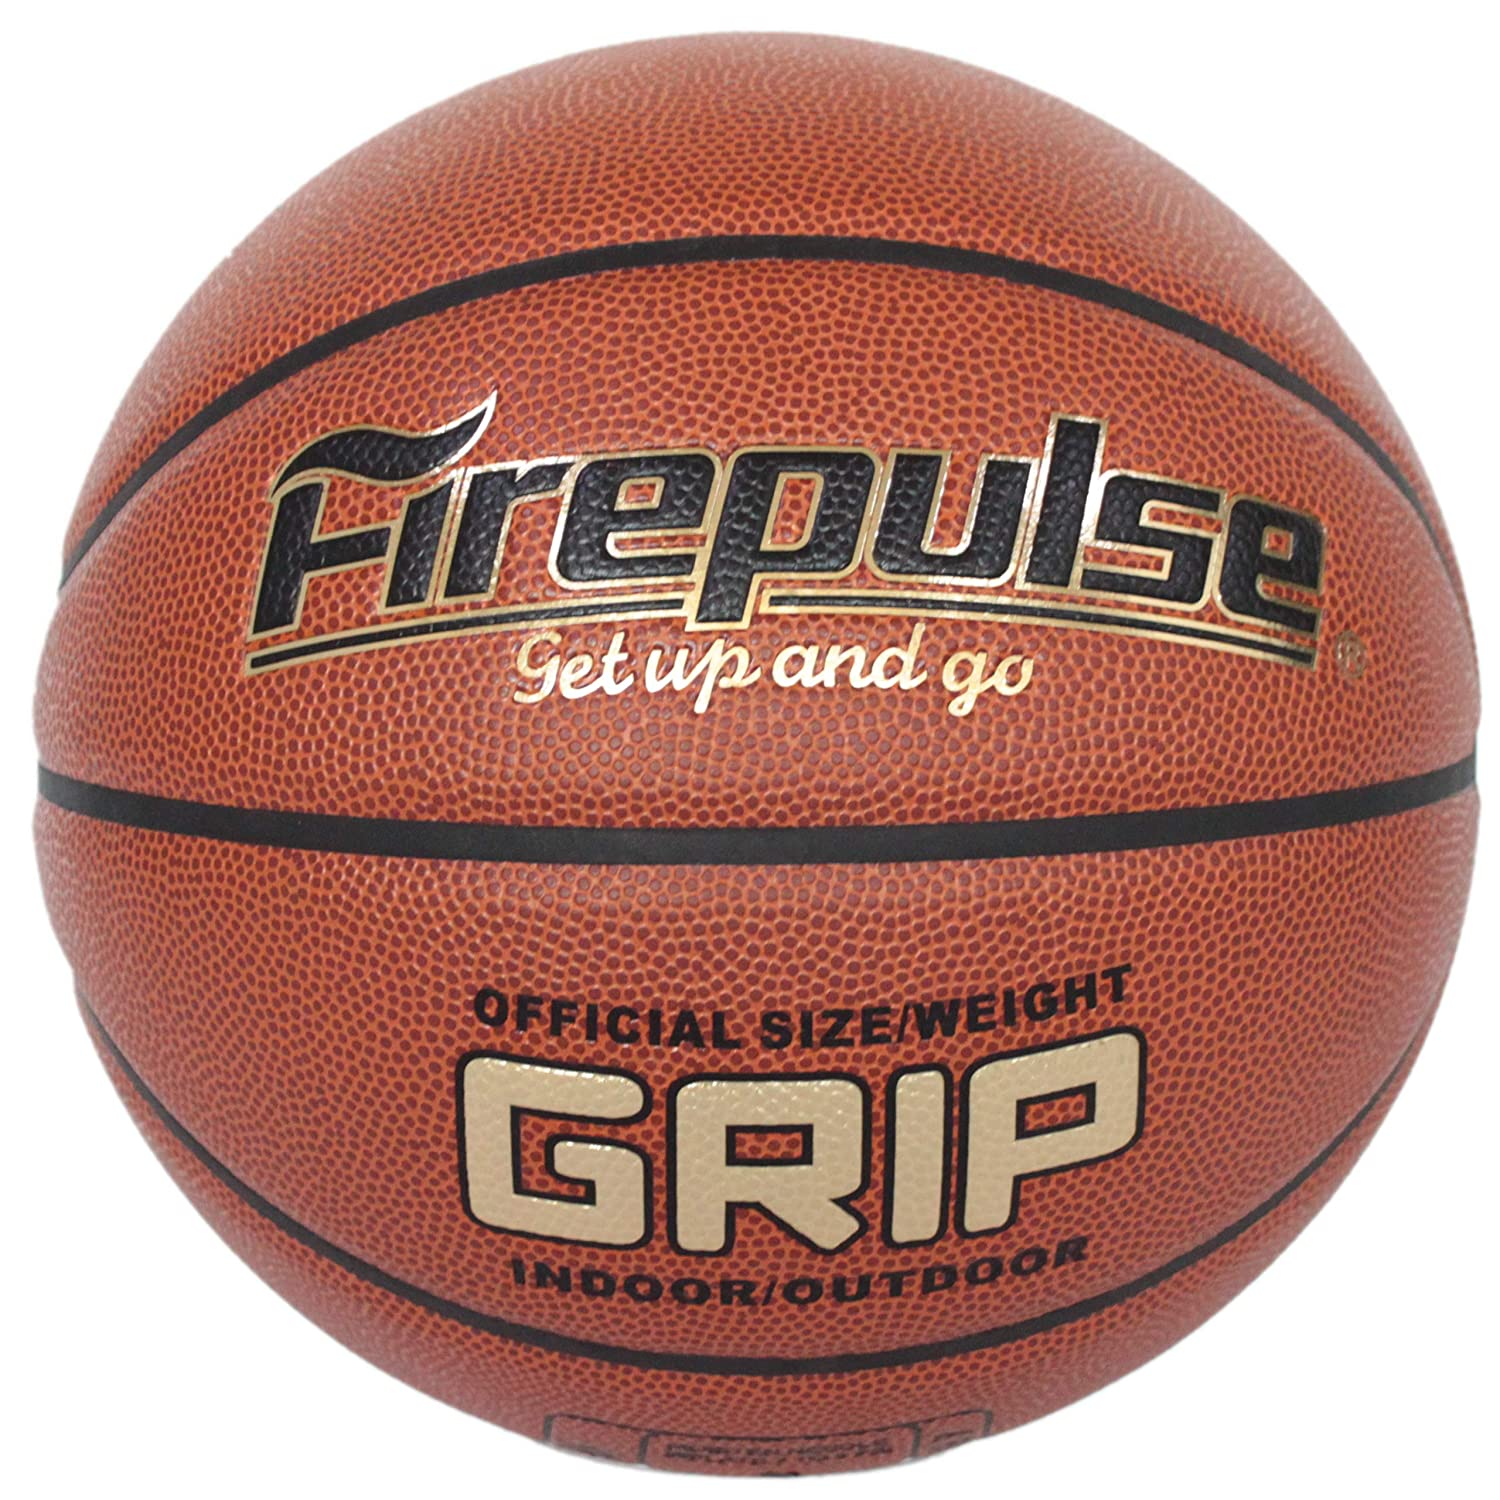 FIREPULSE Grip Basketball Official Size 7 29.5 Indoor Outdoor Composite Leather Game Basketballs with Free Air Pump,Needles,Basketball Carry Bag